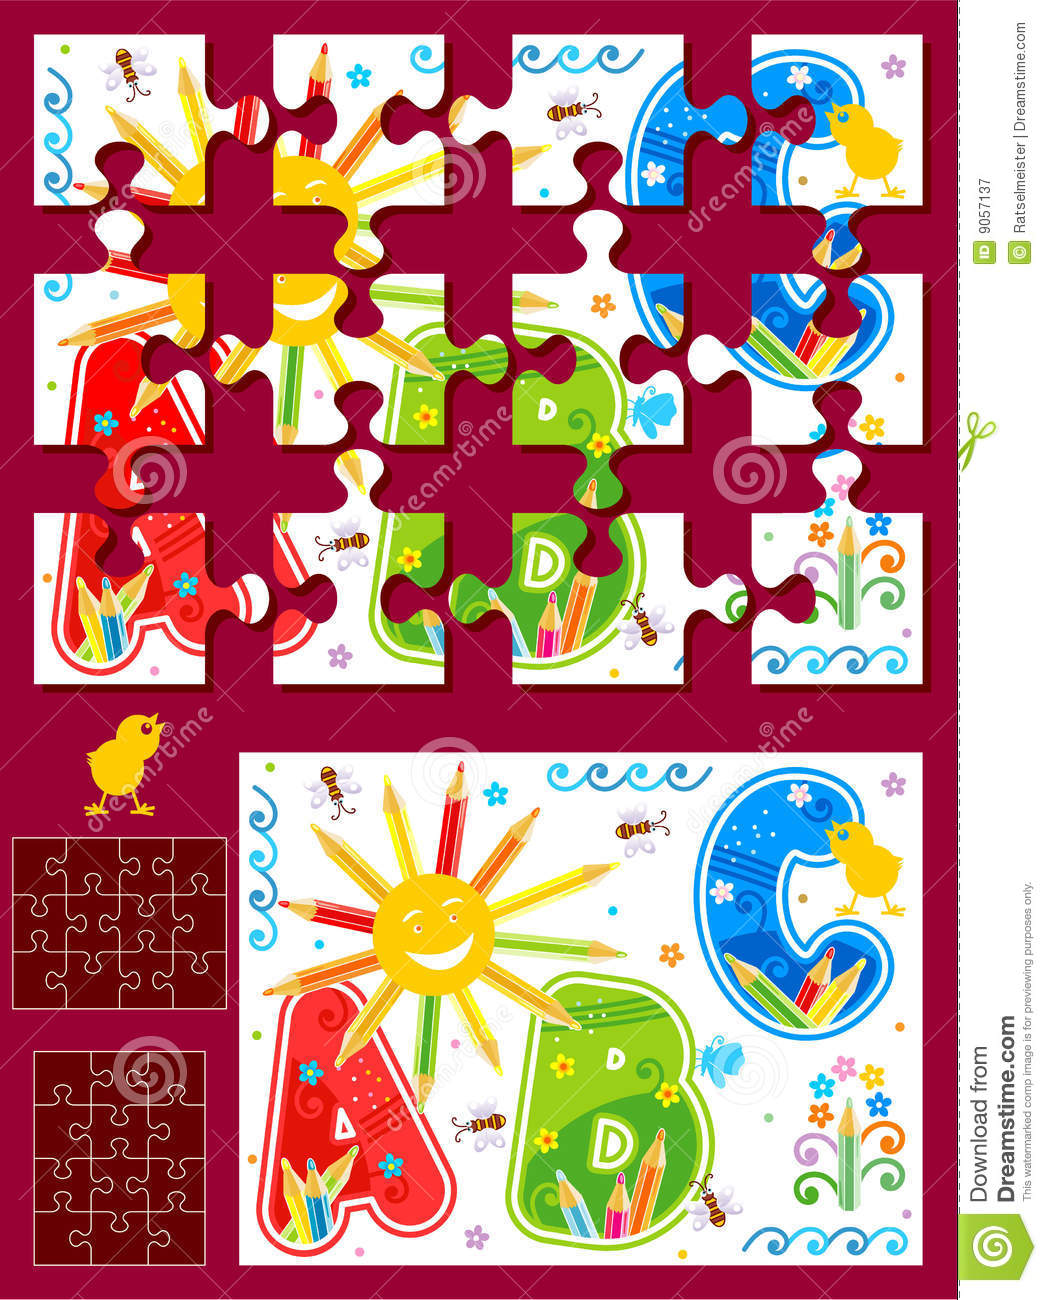 make your own jigsaw puzzle kit stock vector illustration of